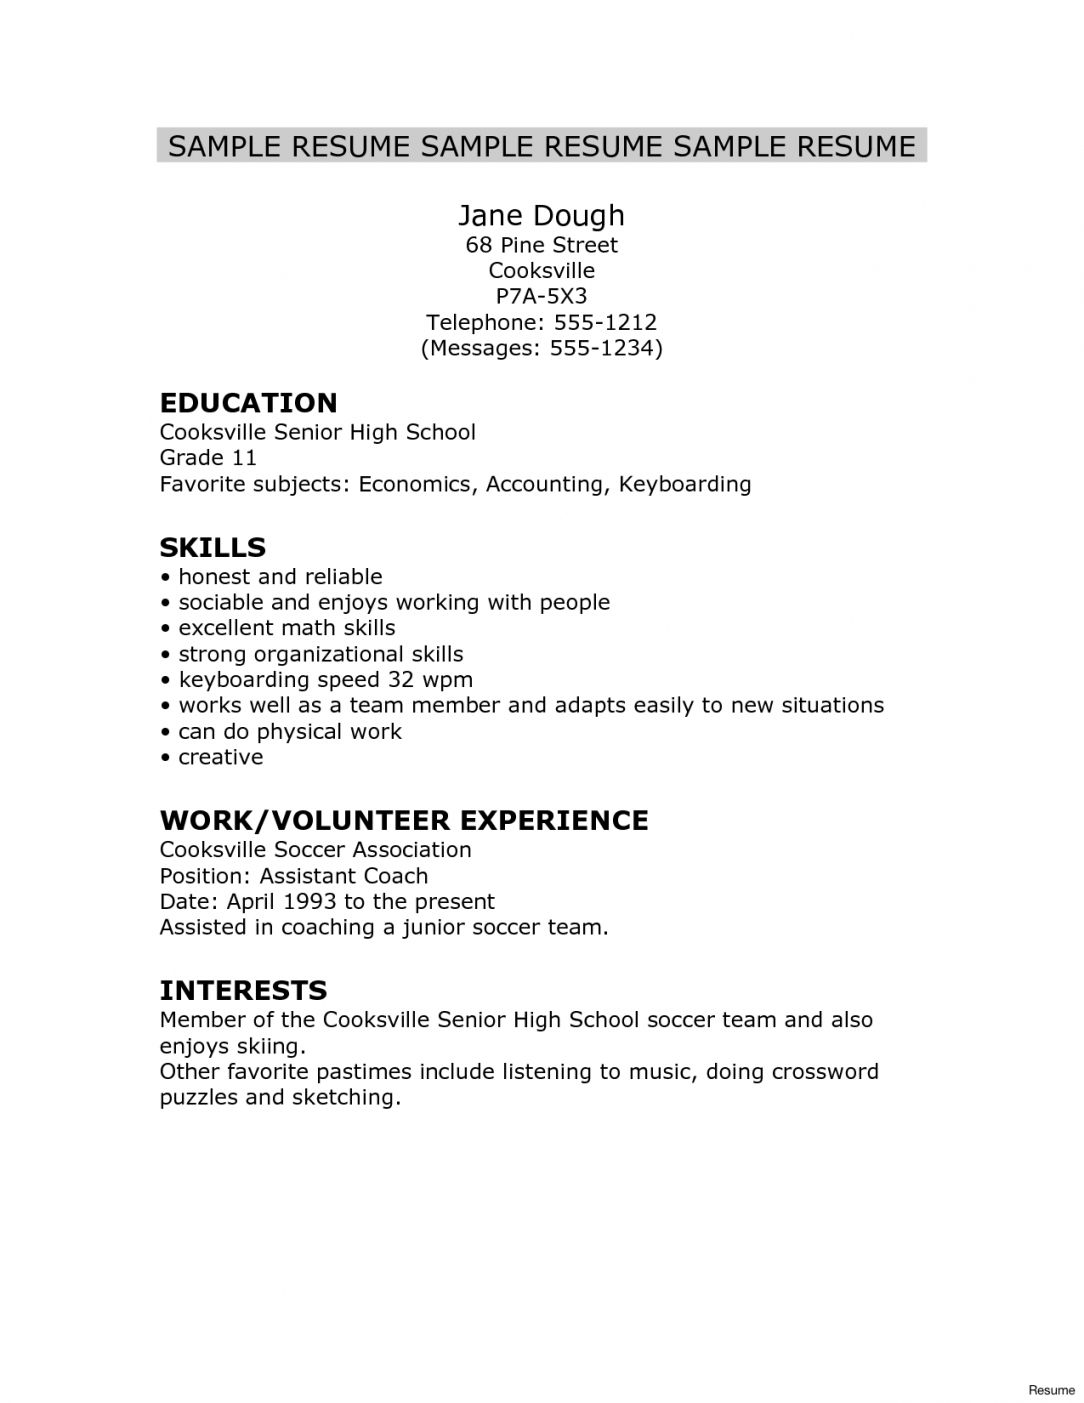 High School Graduate | 3-Resume Format | High school resume, College ...